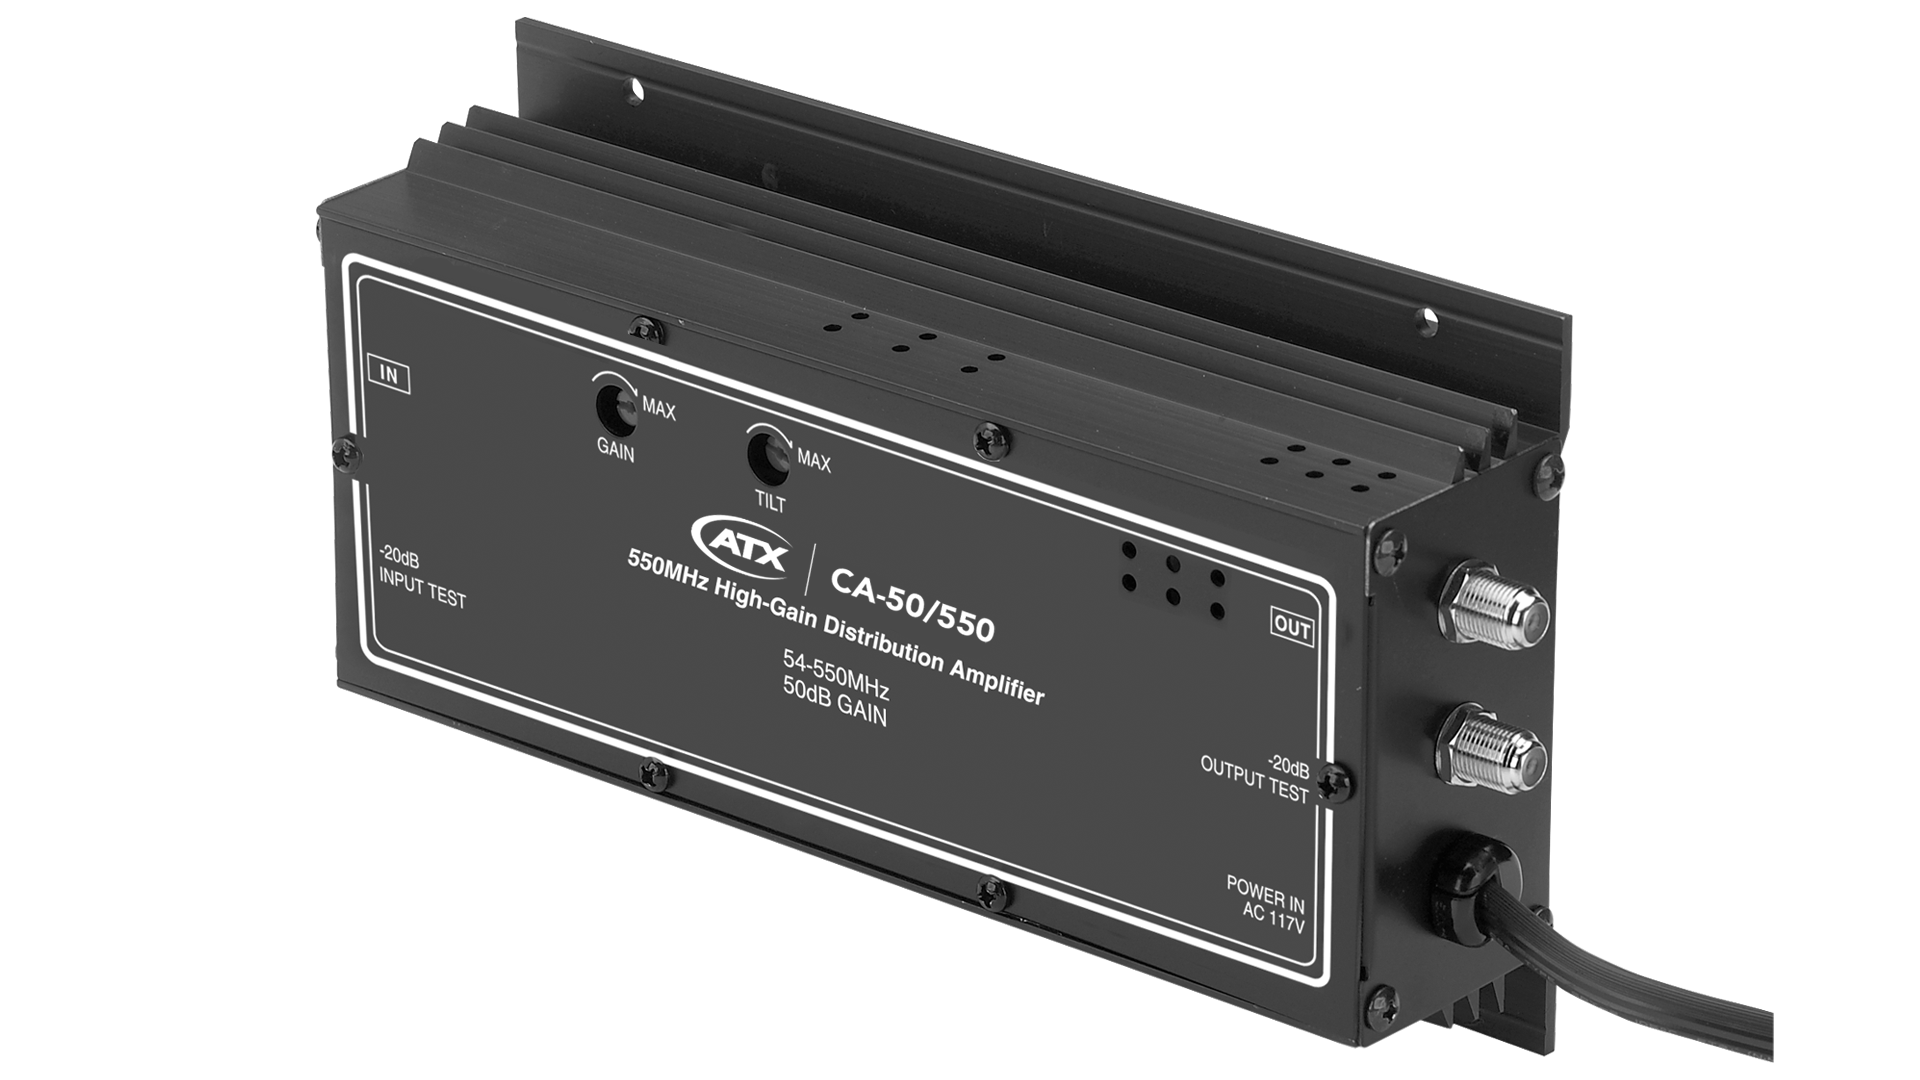 CA-50/550: 550MHz High-Gain Distribution Amplifier